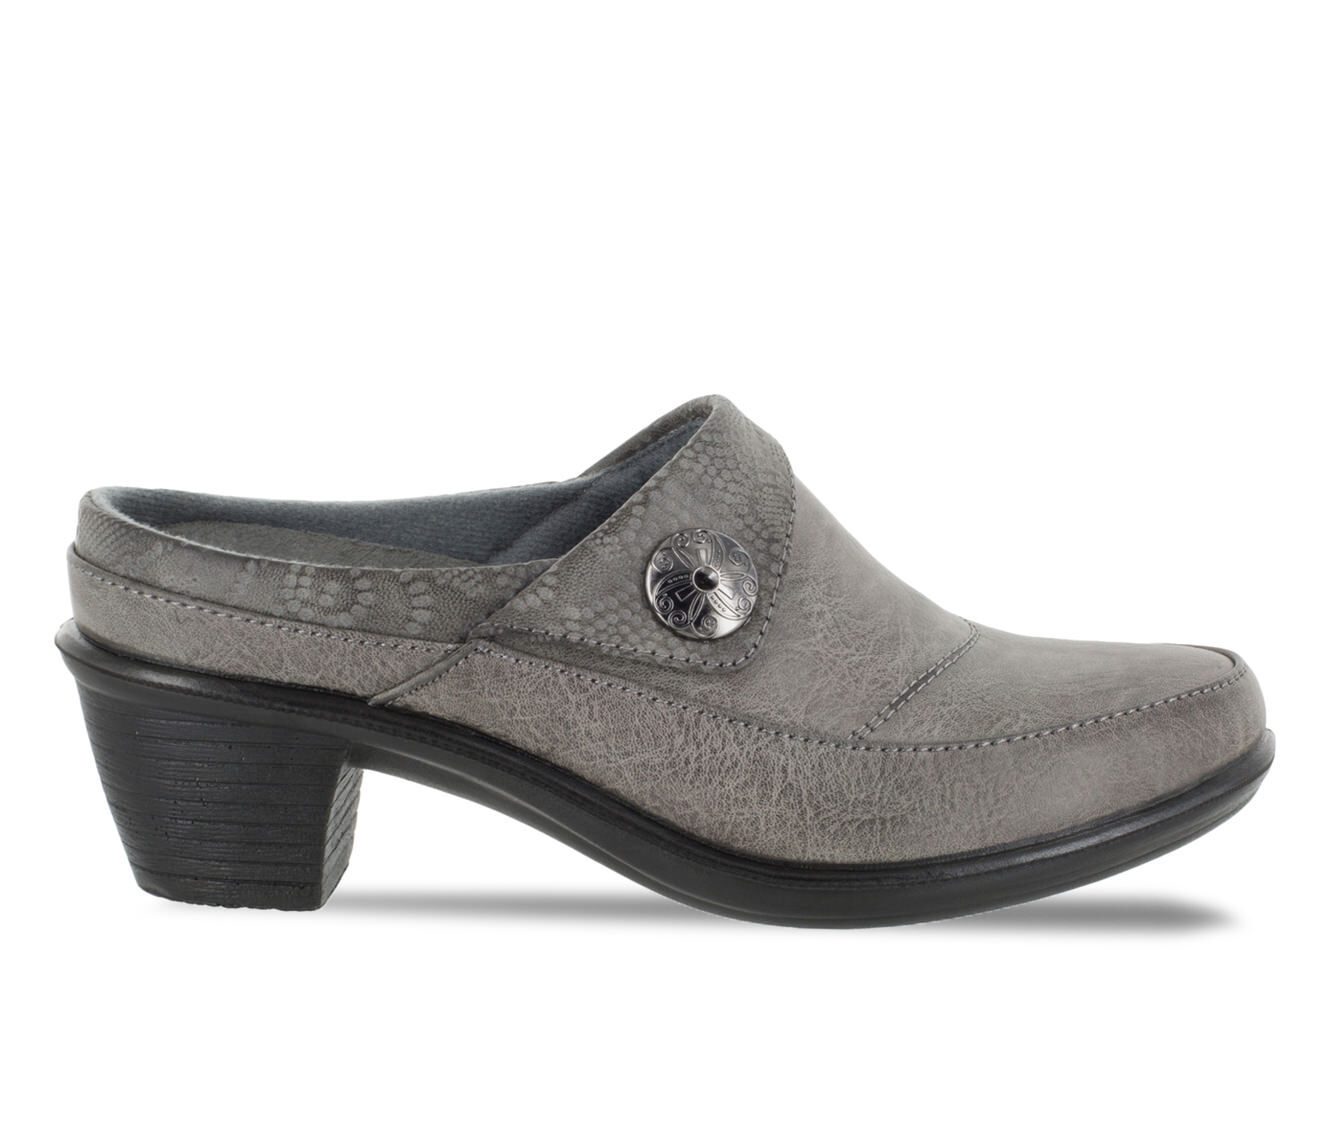 Women's Easy Street Journey Shoes Grey/Embossed